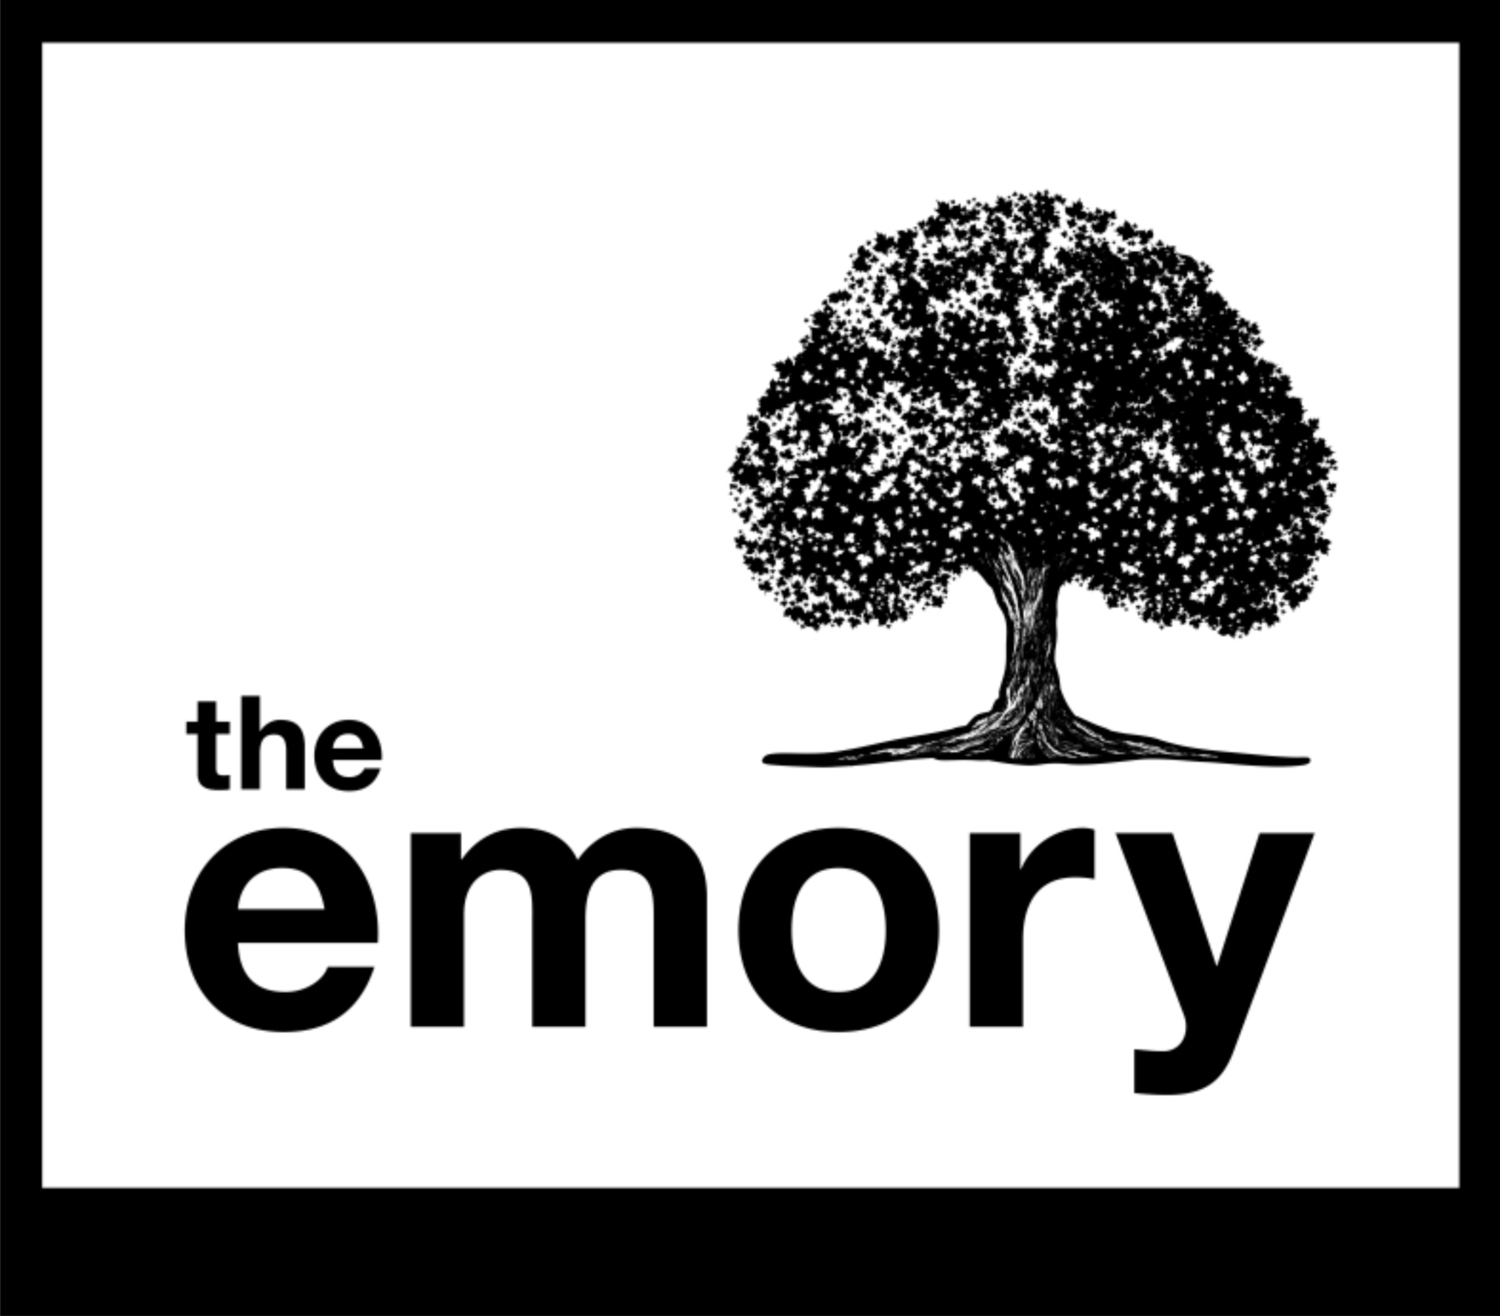 the emory